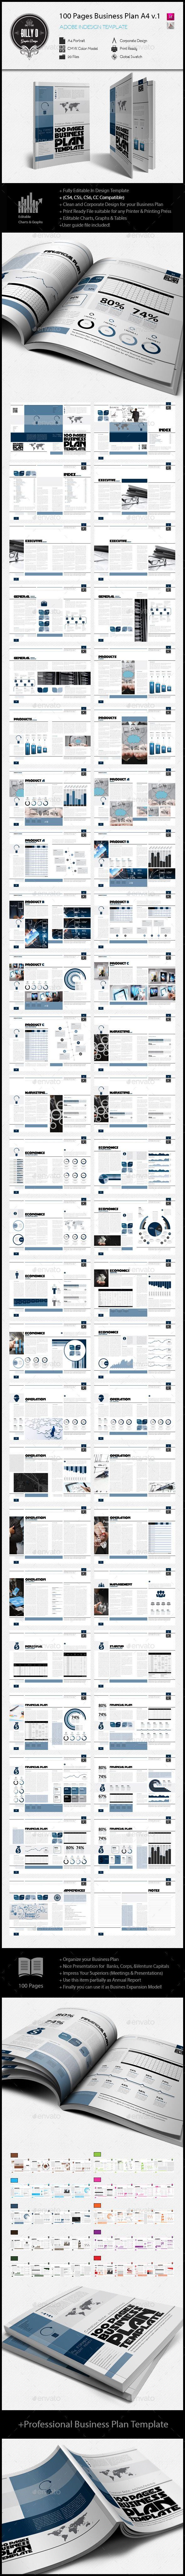 Pages Business Plan Template A V Business Planning A - Business plan template indesign